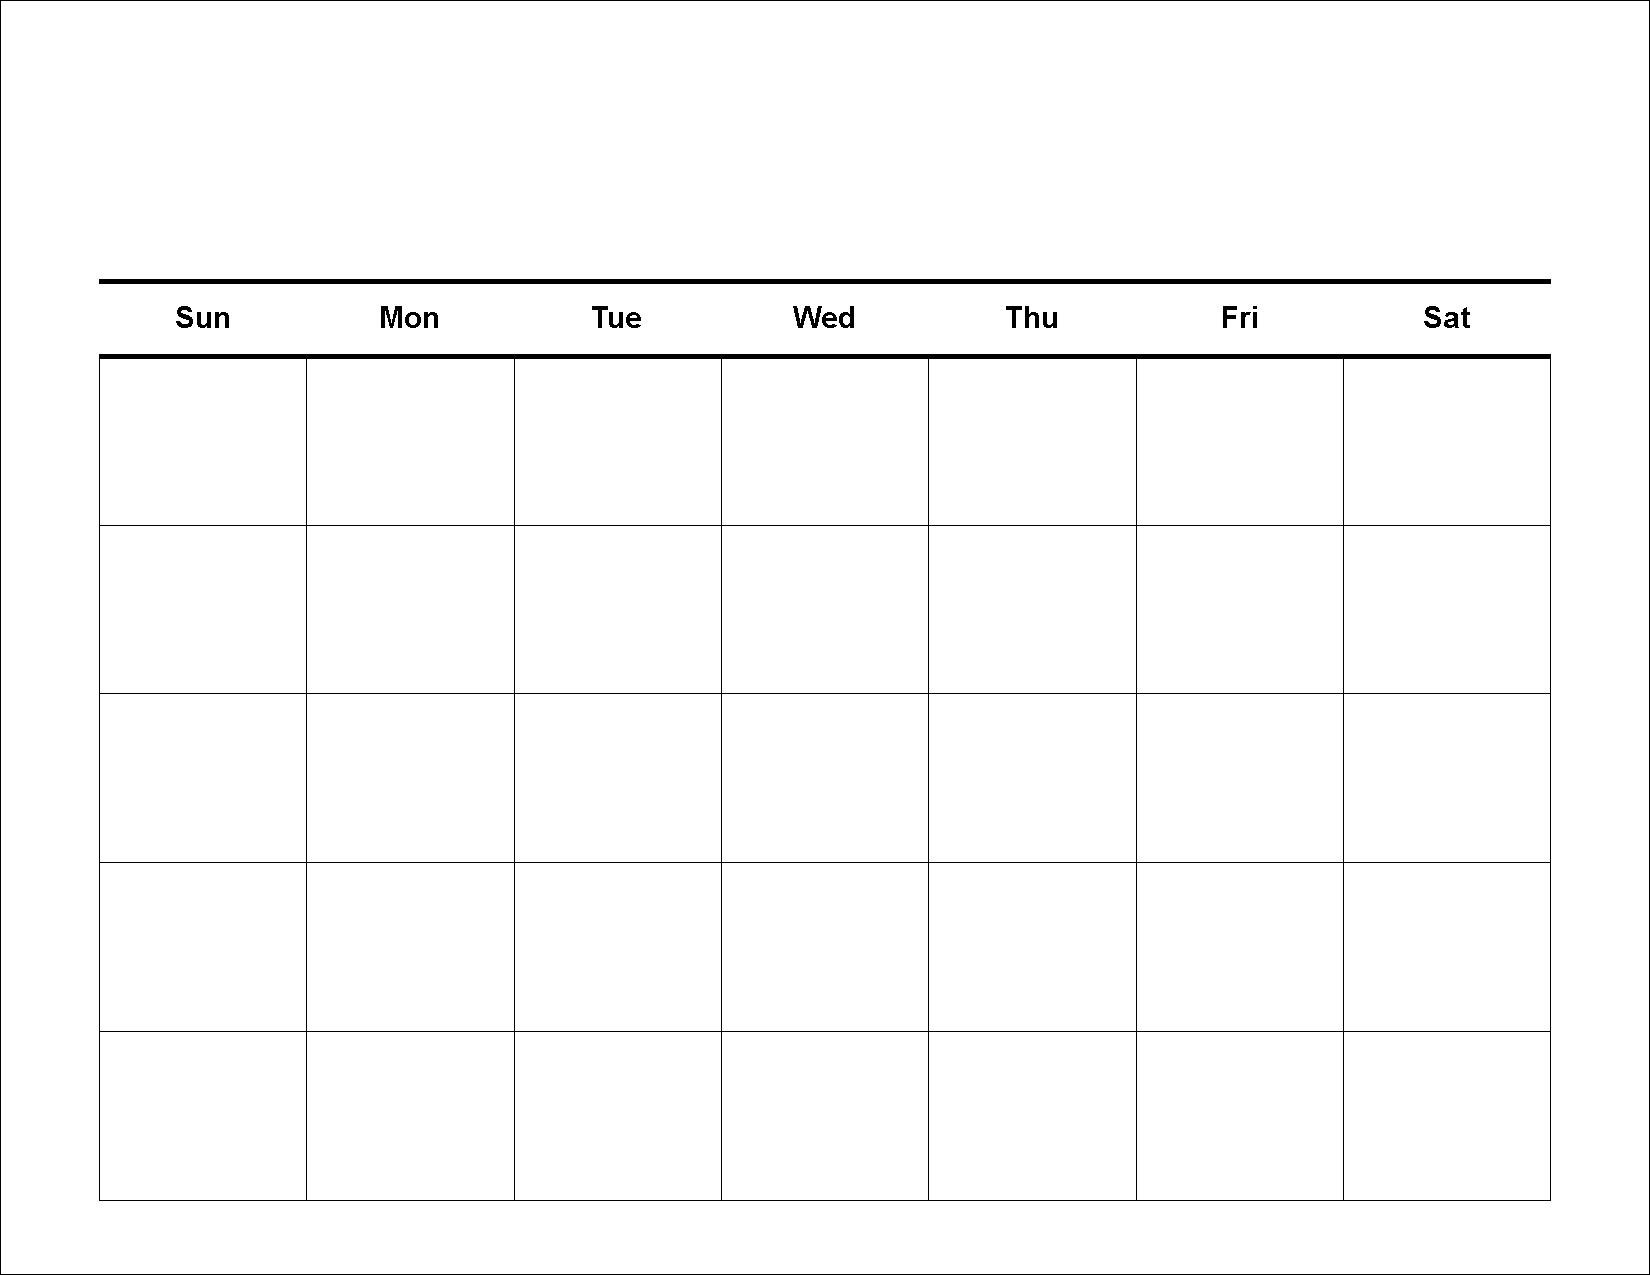 30-Day-Calendar-Template-Printable-Large with regard to Blank Calendar Template With Lines